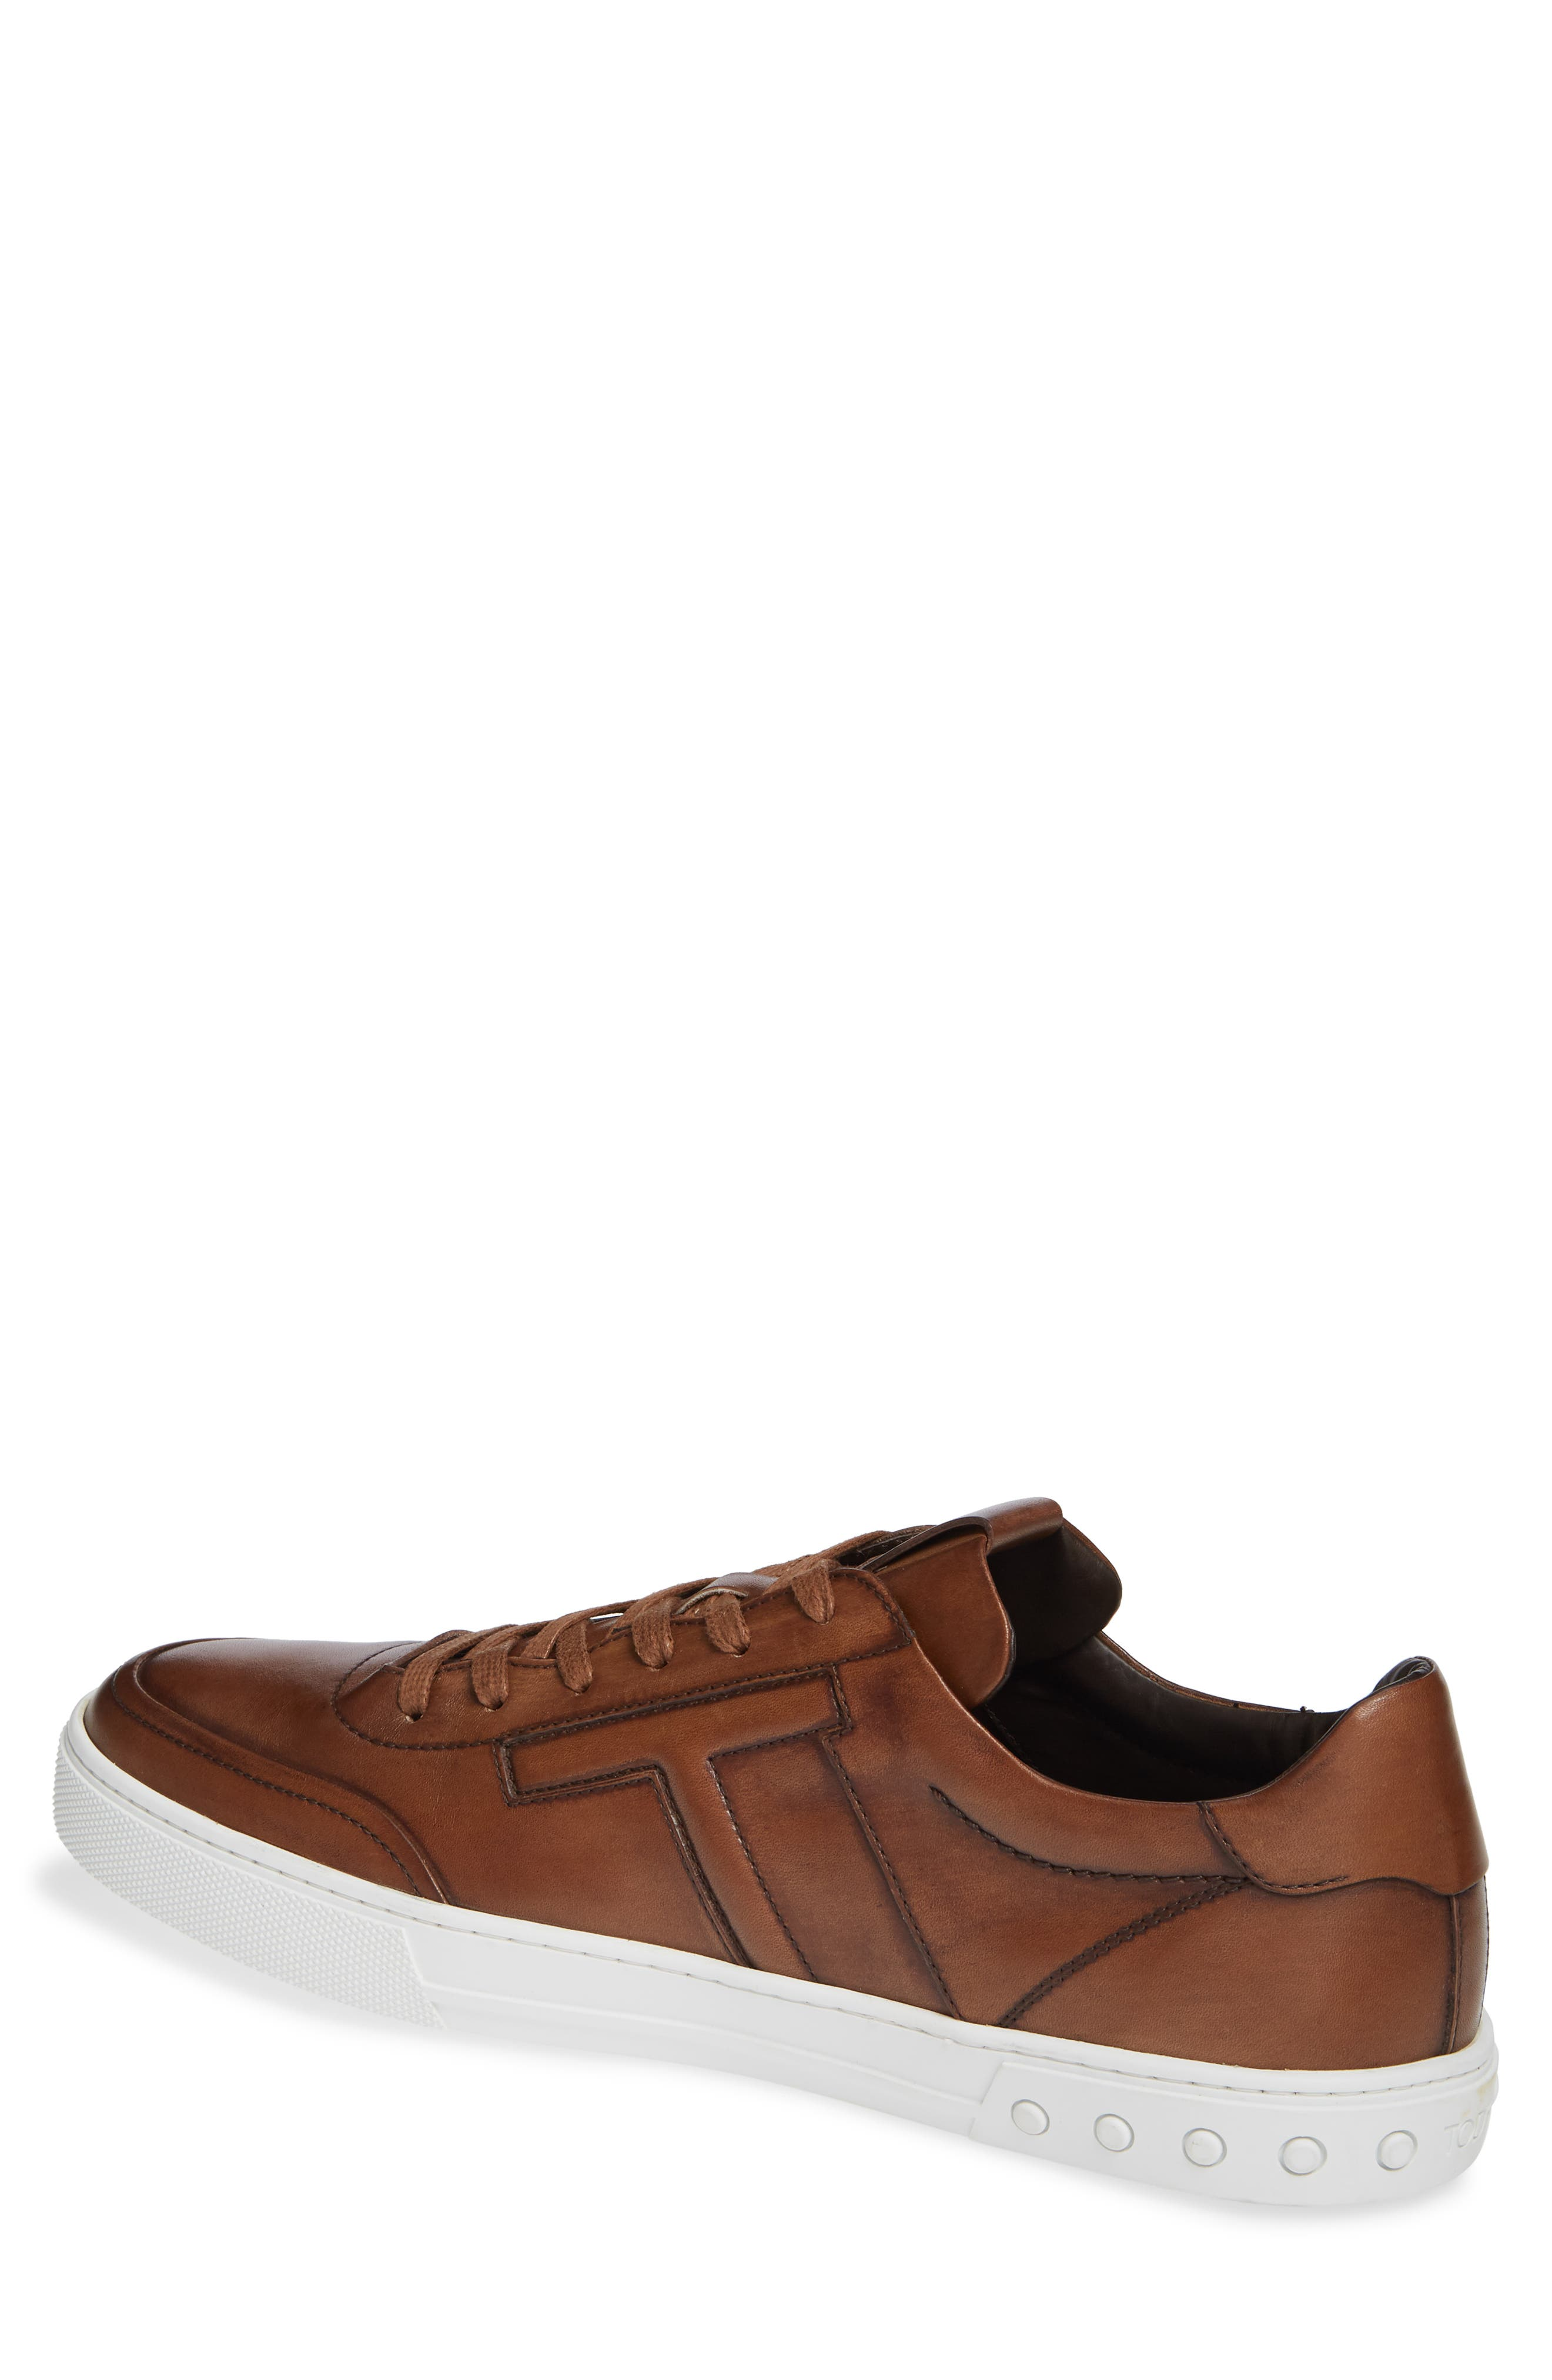 TOD'S, 'Cassetta' Sneaker, Alternate thumbnail 2, color, CARAMEL/ SPECIAL LEATHER